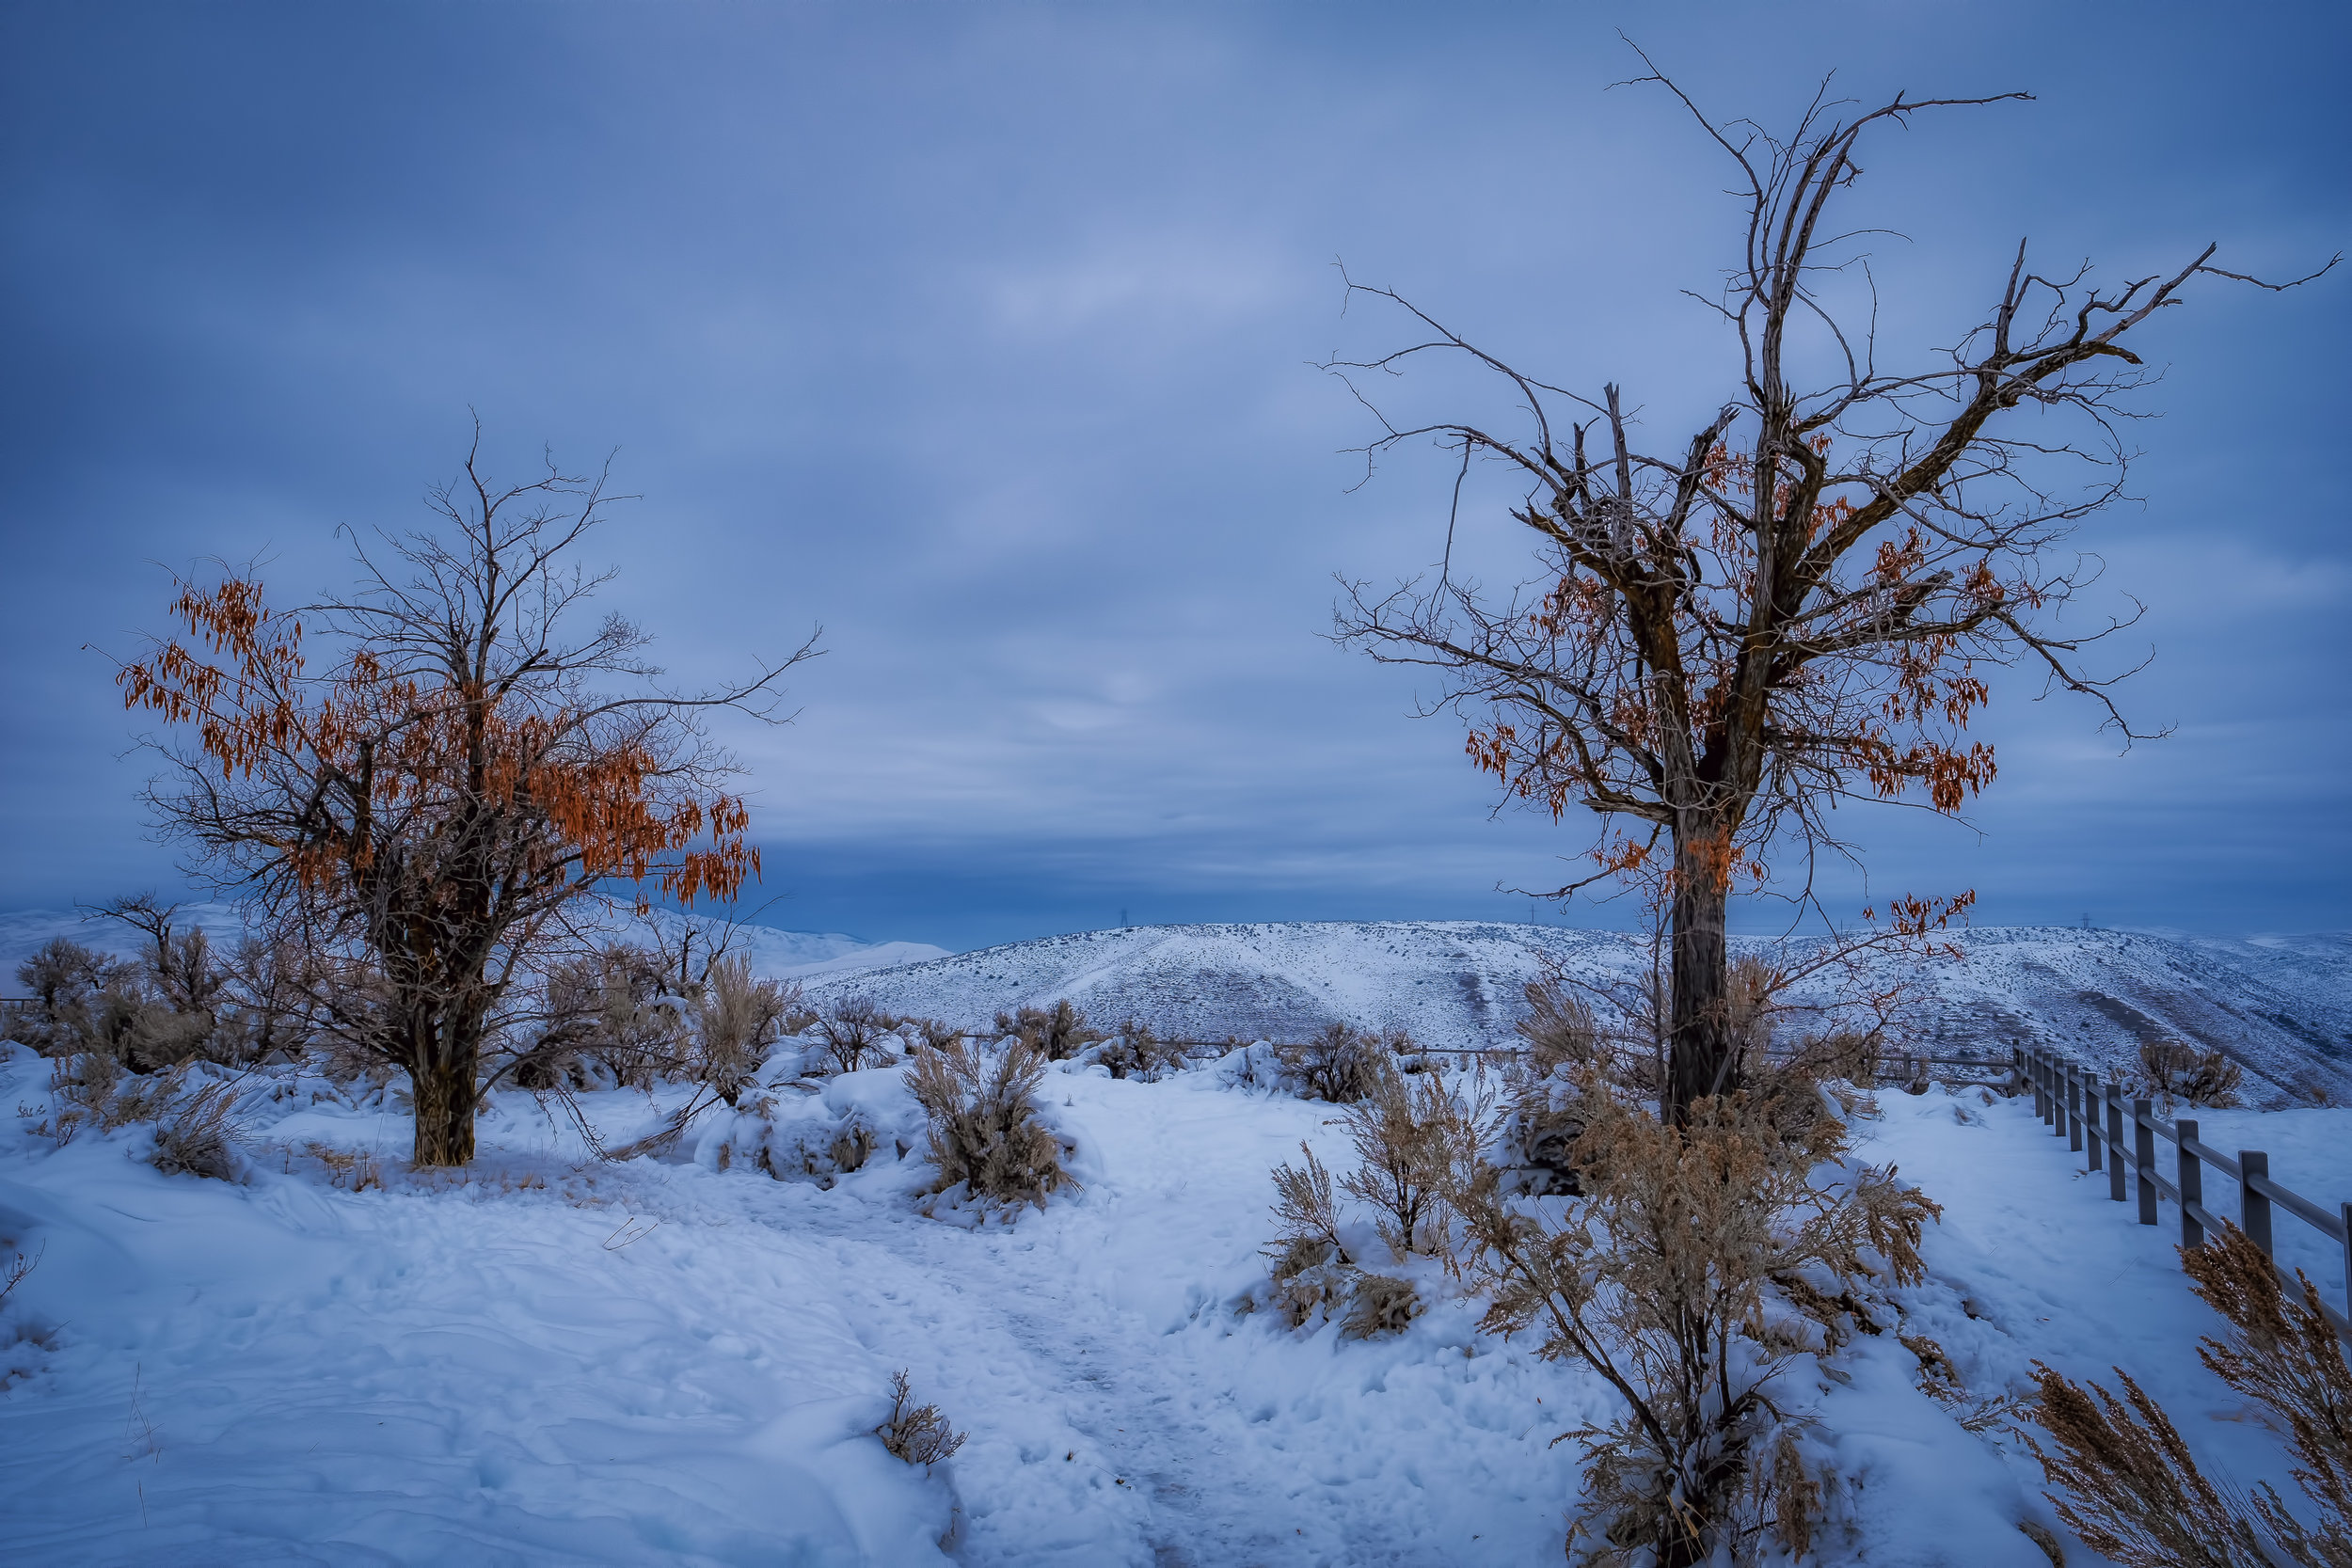 Two Trees in Winter - Fujifilm X-T3, 1/320 @ f/11, ISO160, 16mm. This shot was taken from a point overlooking the Treasure Valley, the location of Boise, Idaho.